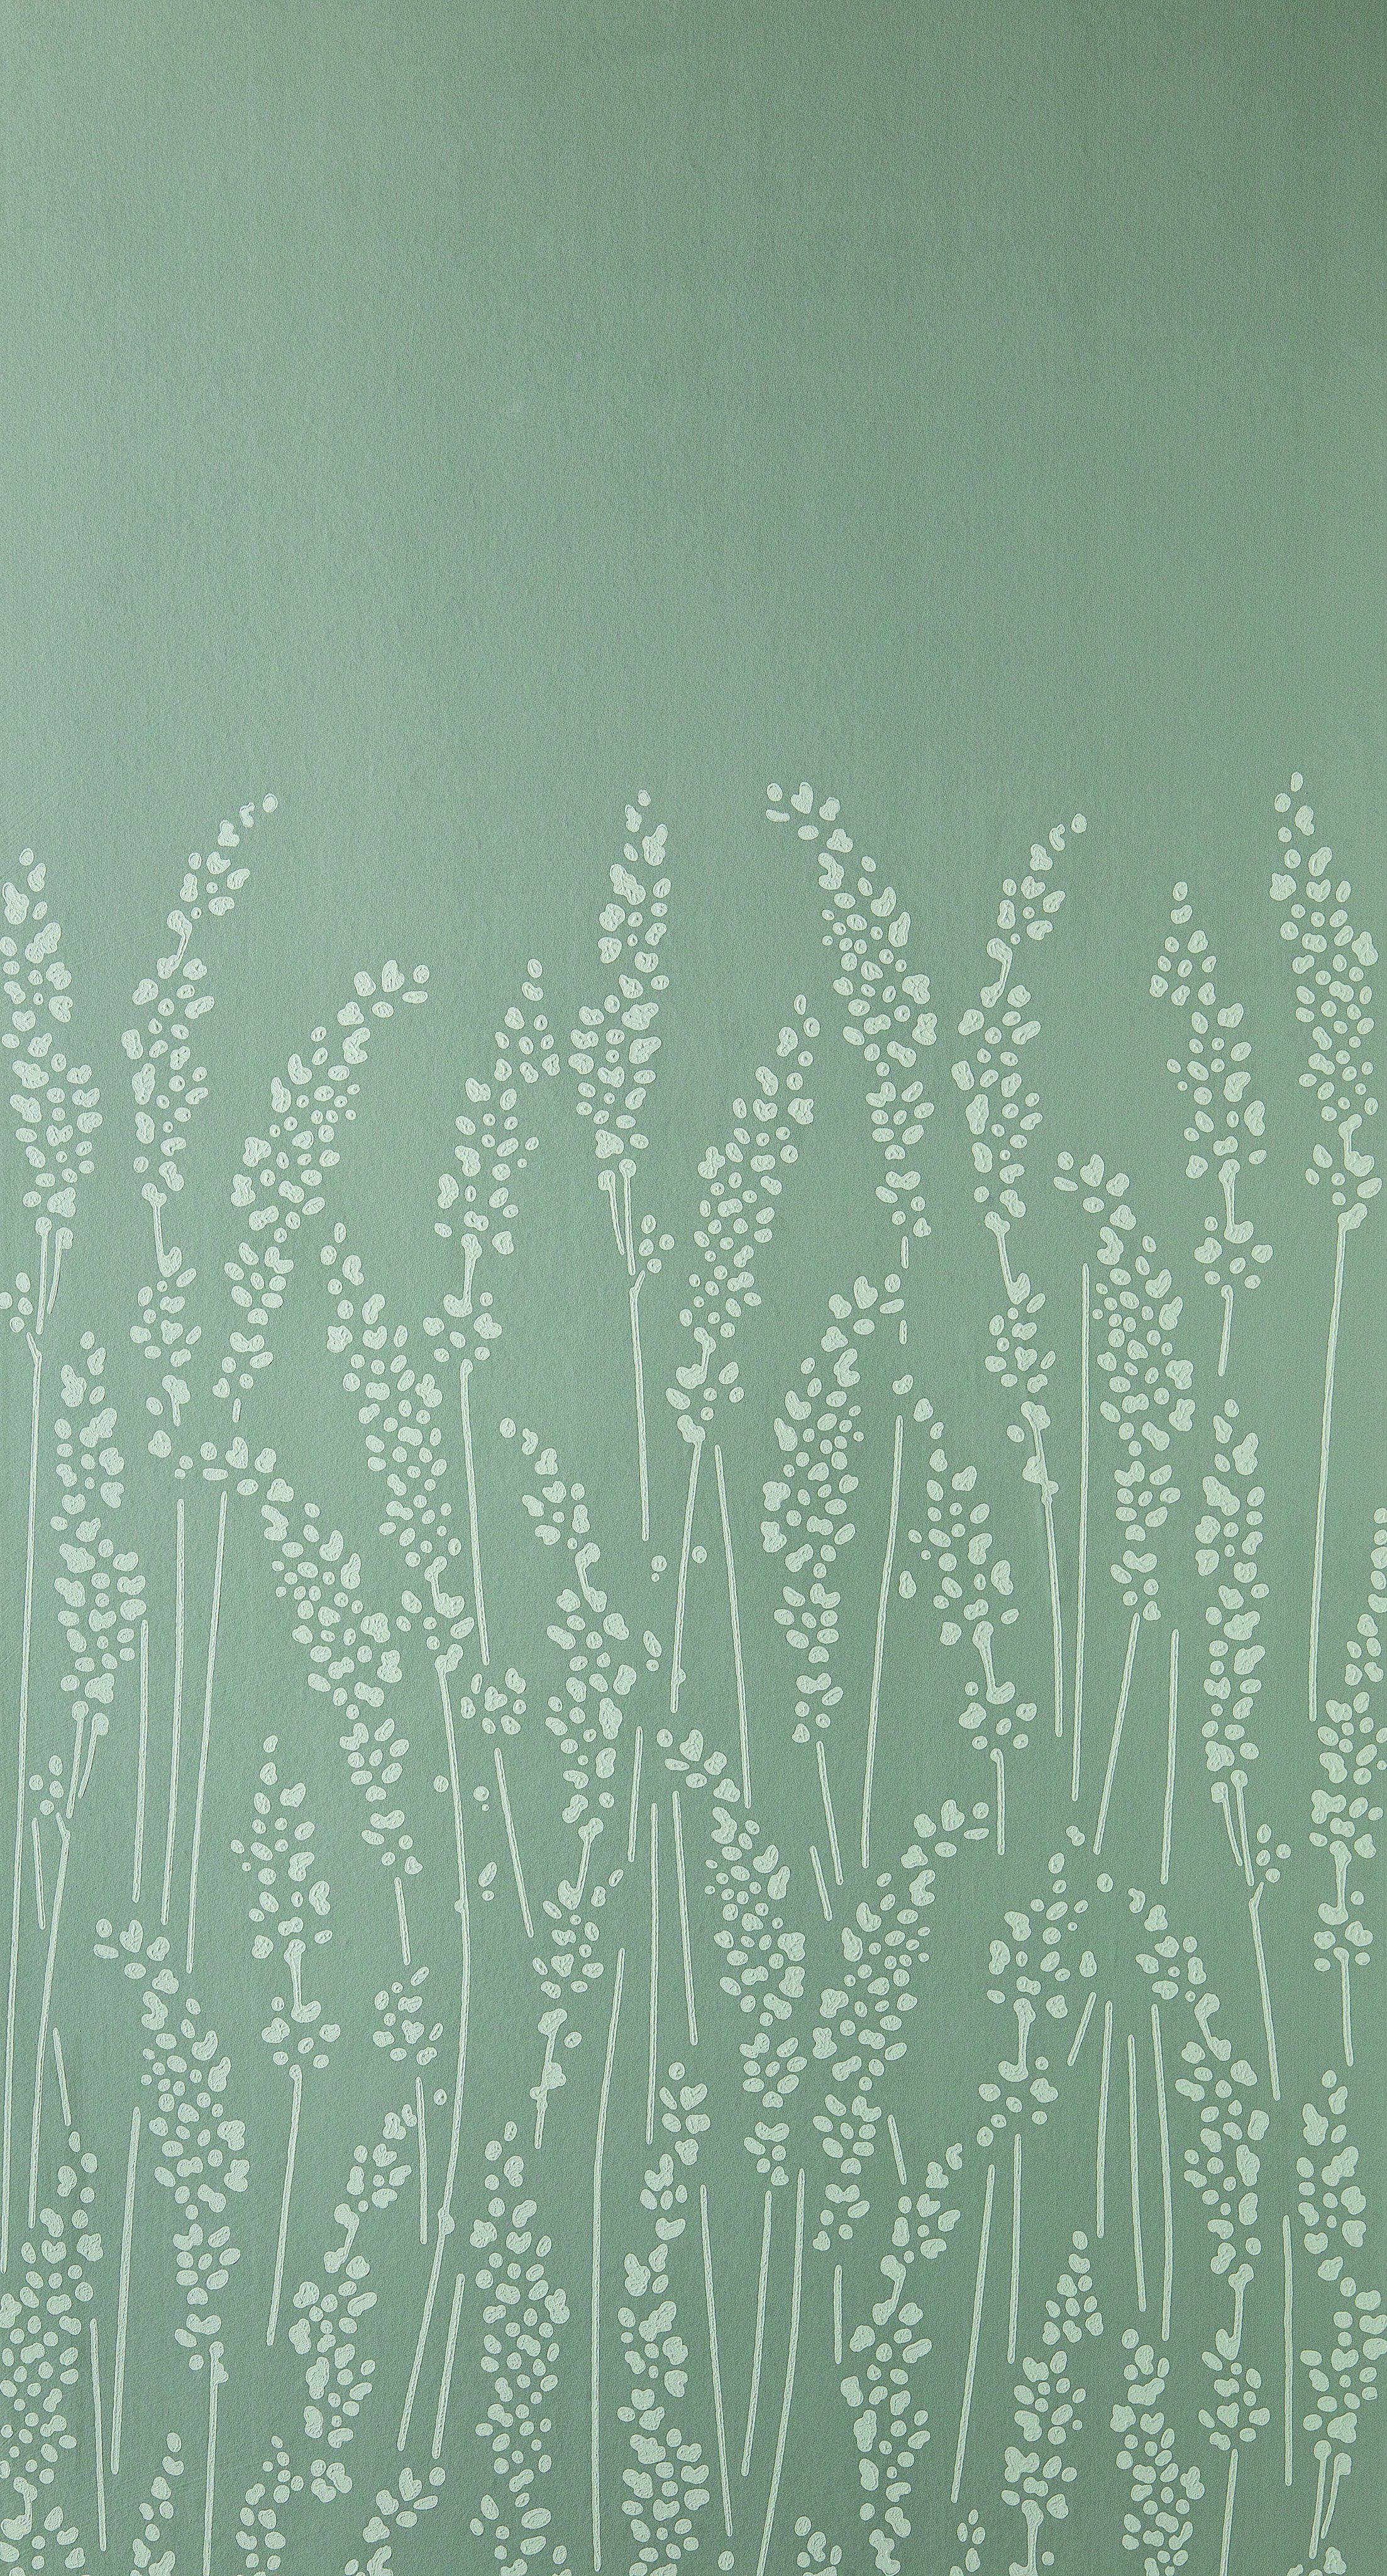 Taking inspiration from the charming Dorset countryside, Feather Grass is a large scal…